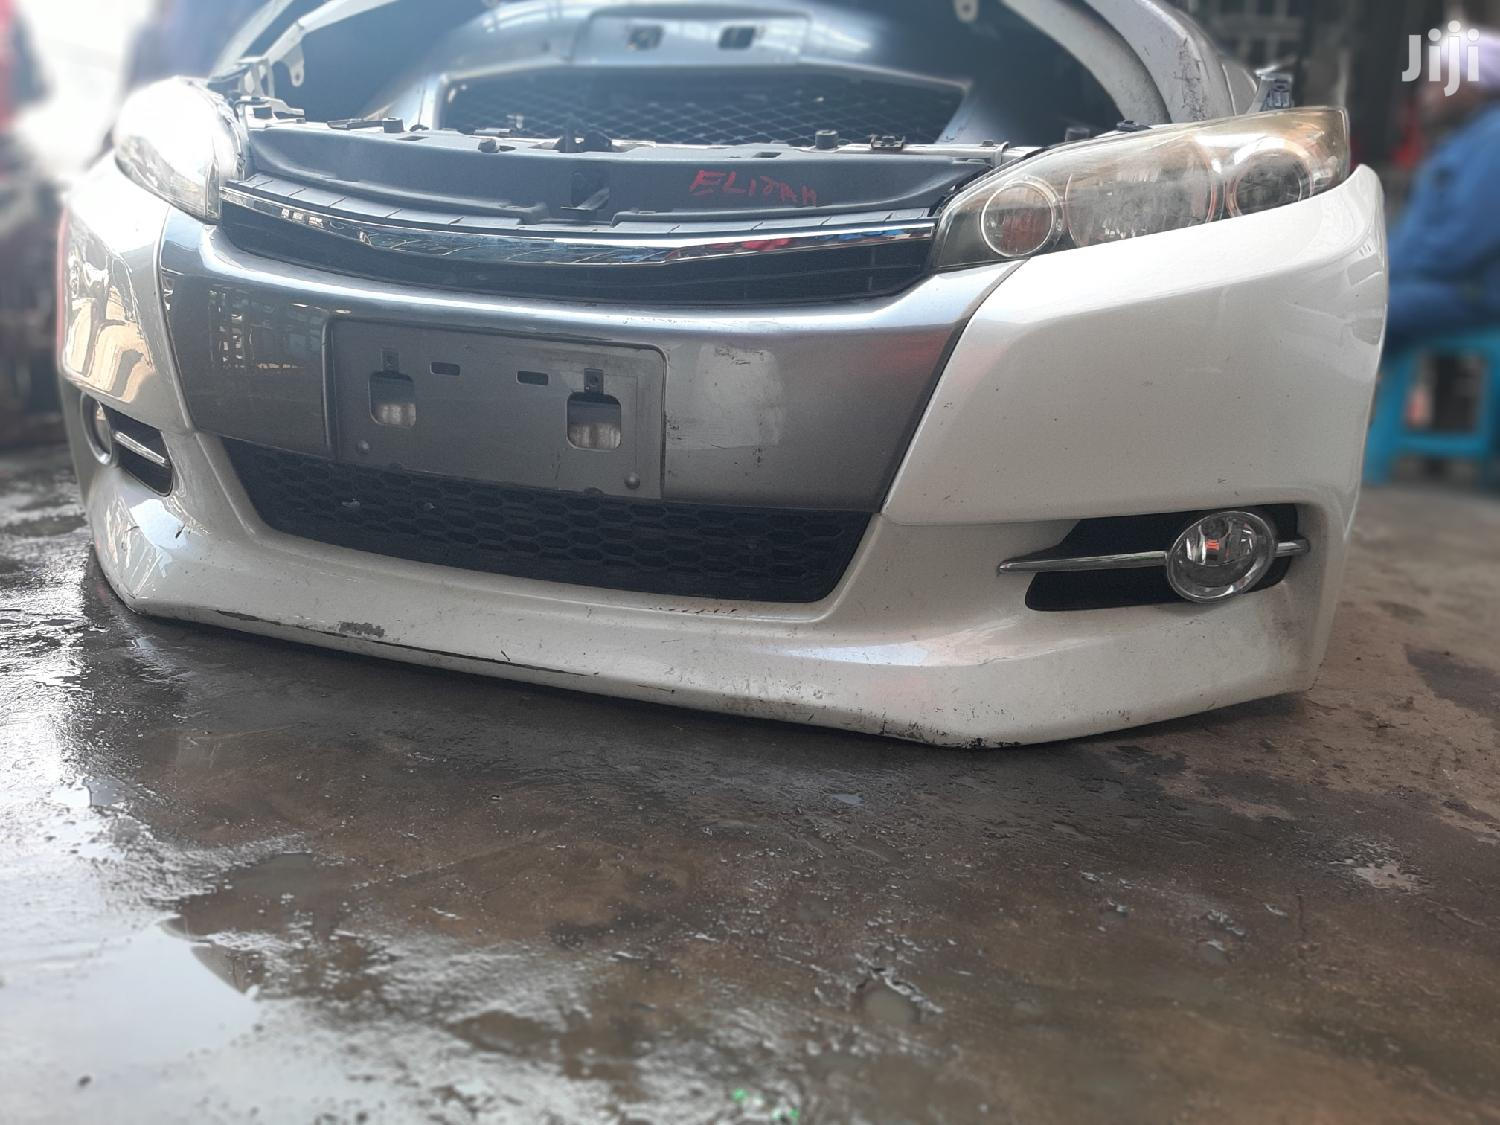 Clean Dent Free Toyota Wish 2014 Nosecut Auto Car Body Parts | Vehicle Parts & Accessories for sale in Nairobi Central, Nairobi, Kenya